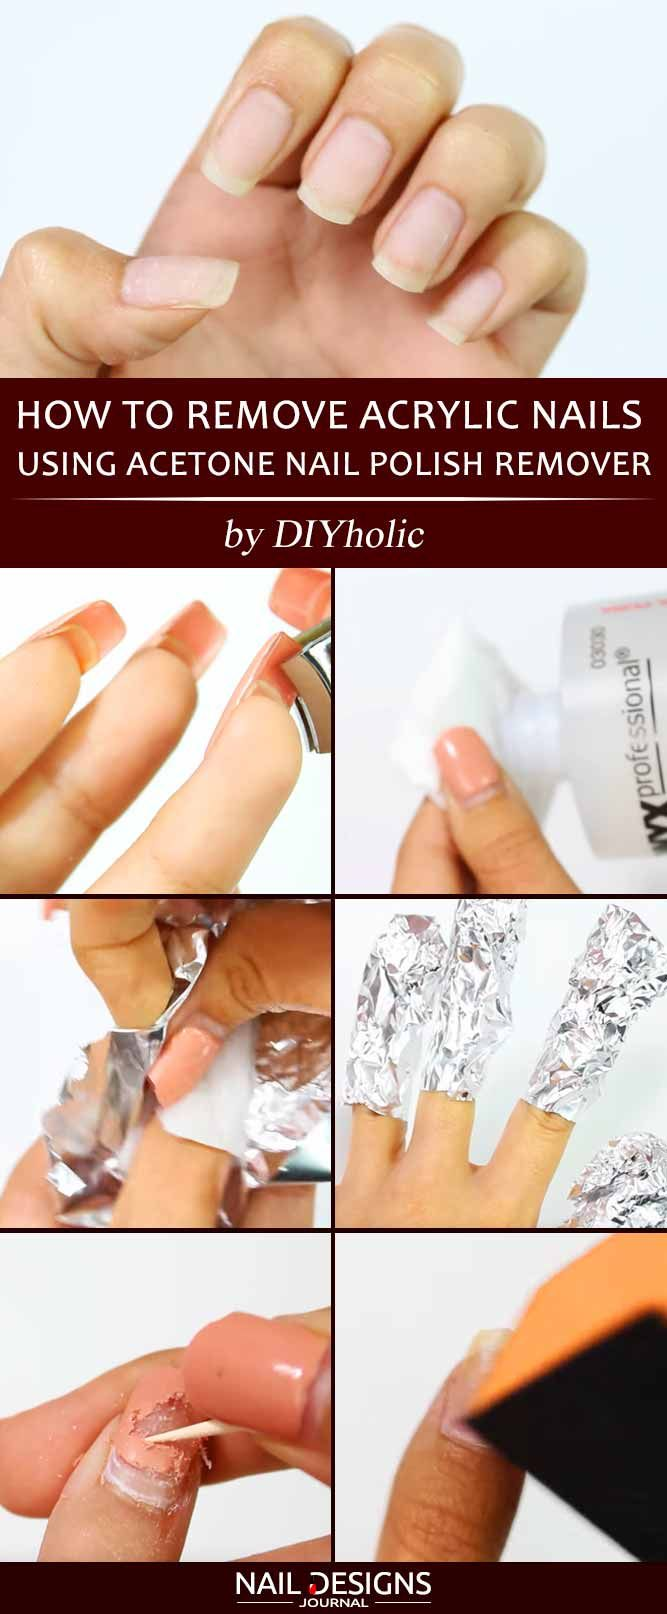 Learn How To Remove Acrylic Nails Naildesignsjournal Remove Acrylic Nails Take Off Acrylic Nails Acrylic Nails At Home